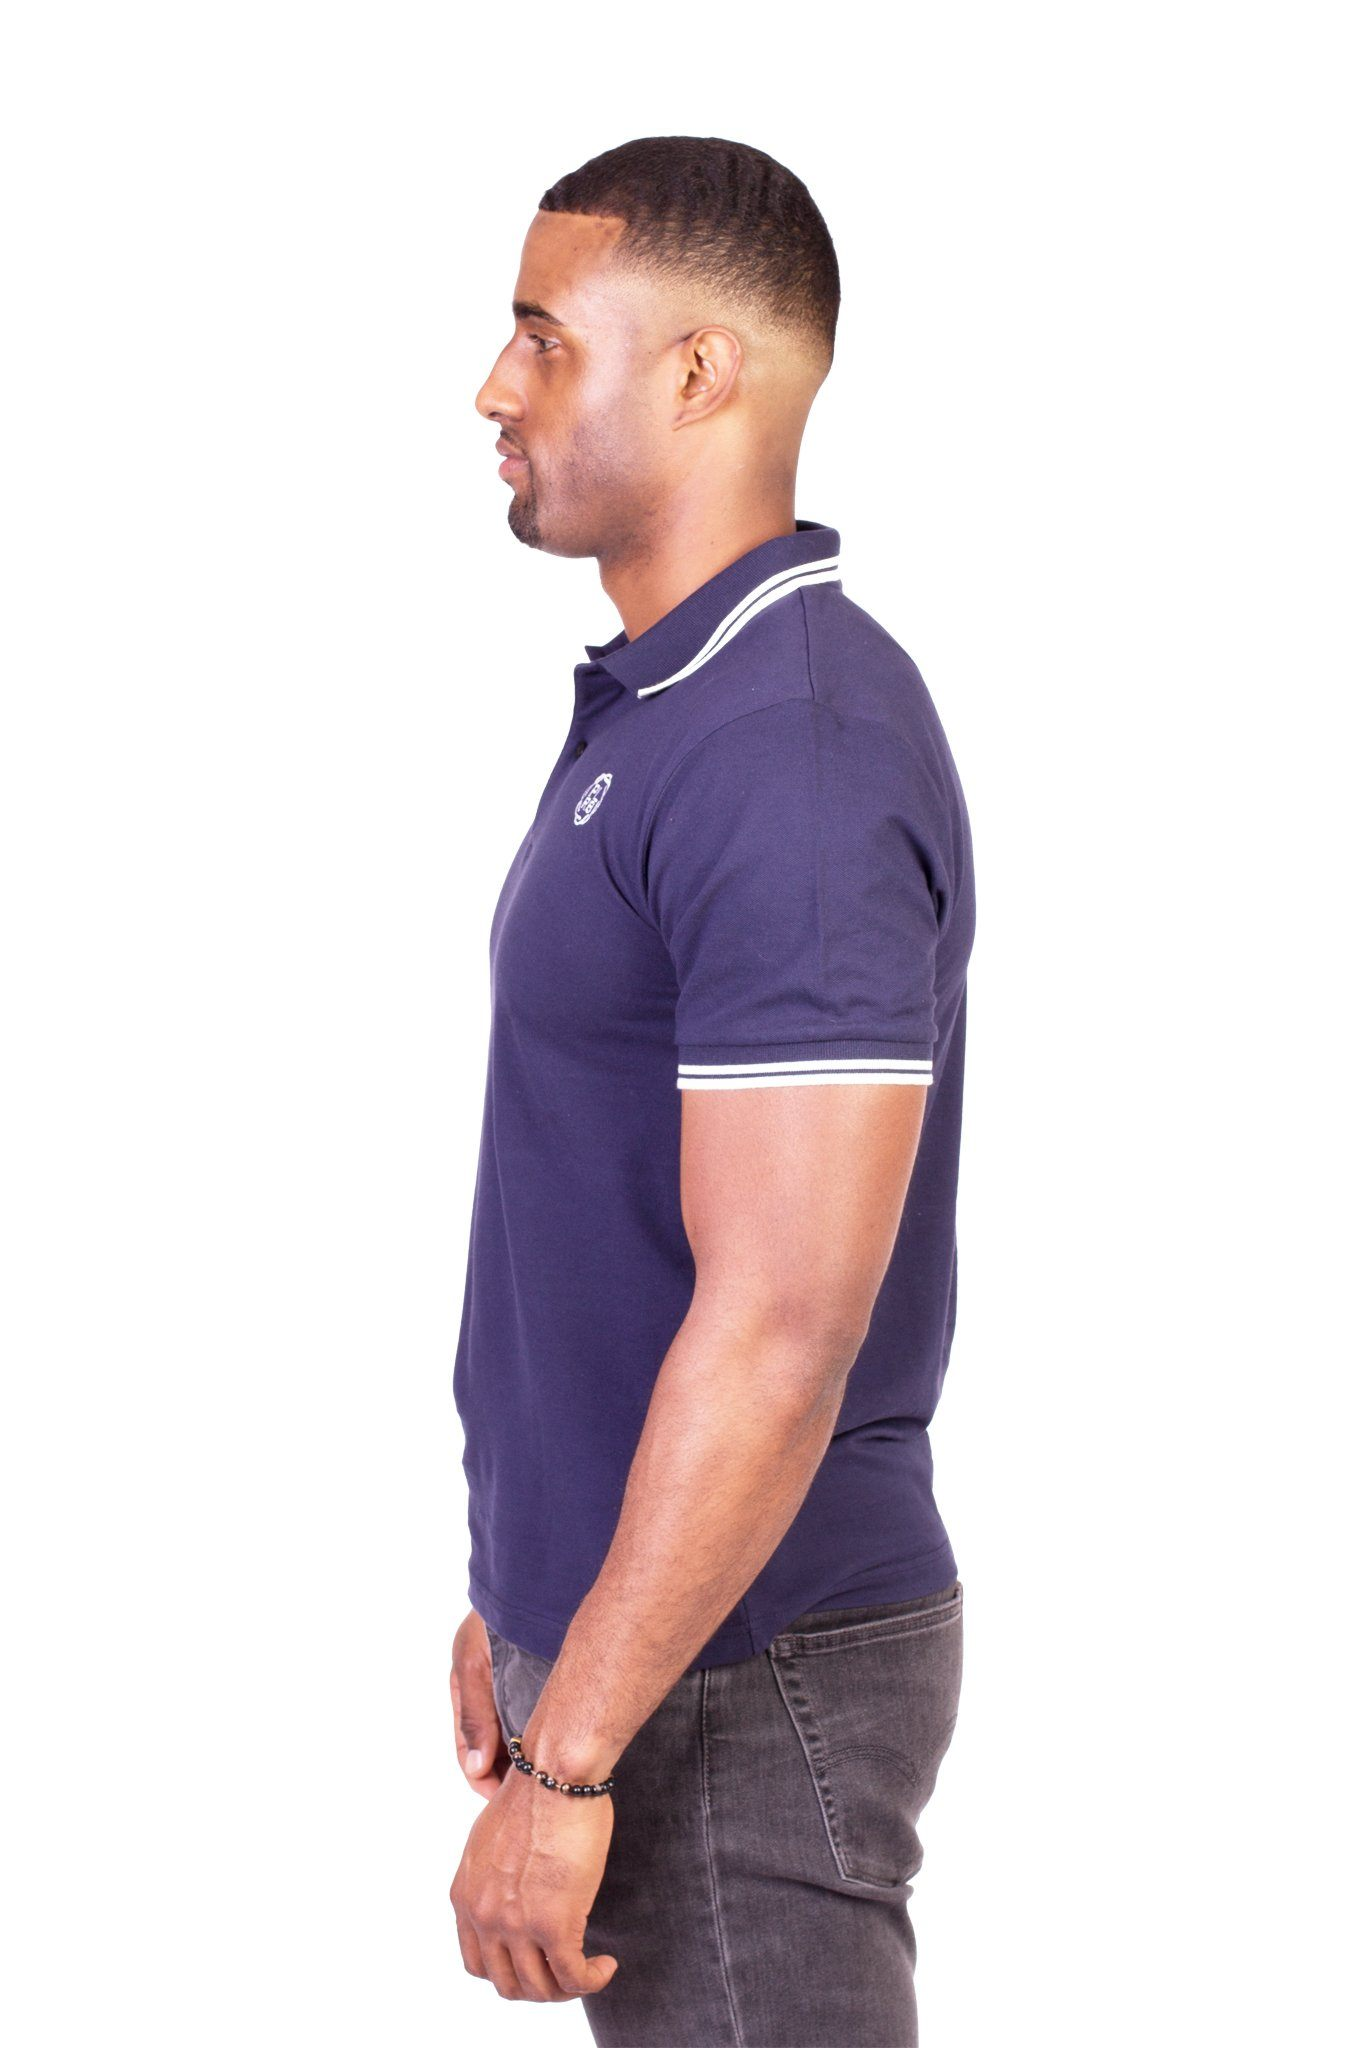 """BELVEDERE"" POLO SHIRT IN NAVY BLUE - Poor Little Rich Boy"